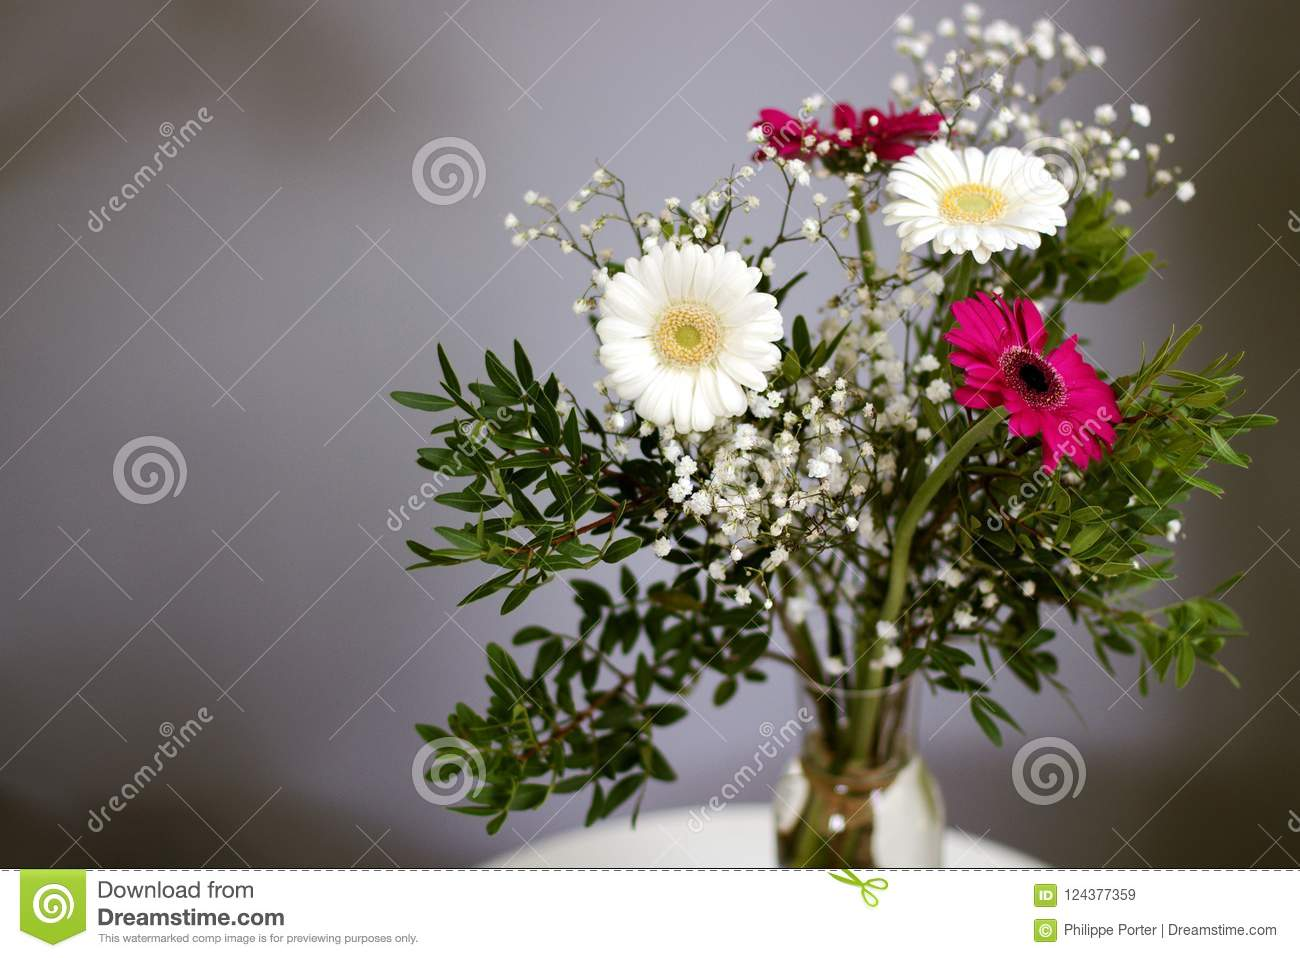 New Beginnings Bouquet Daisy Flowers White Red Petals Loyal Love